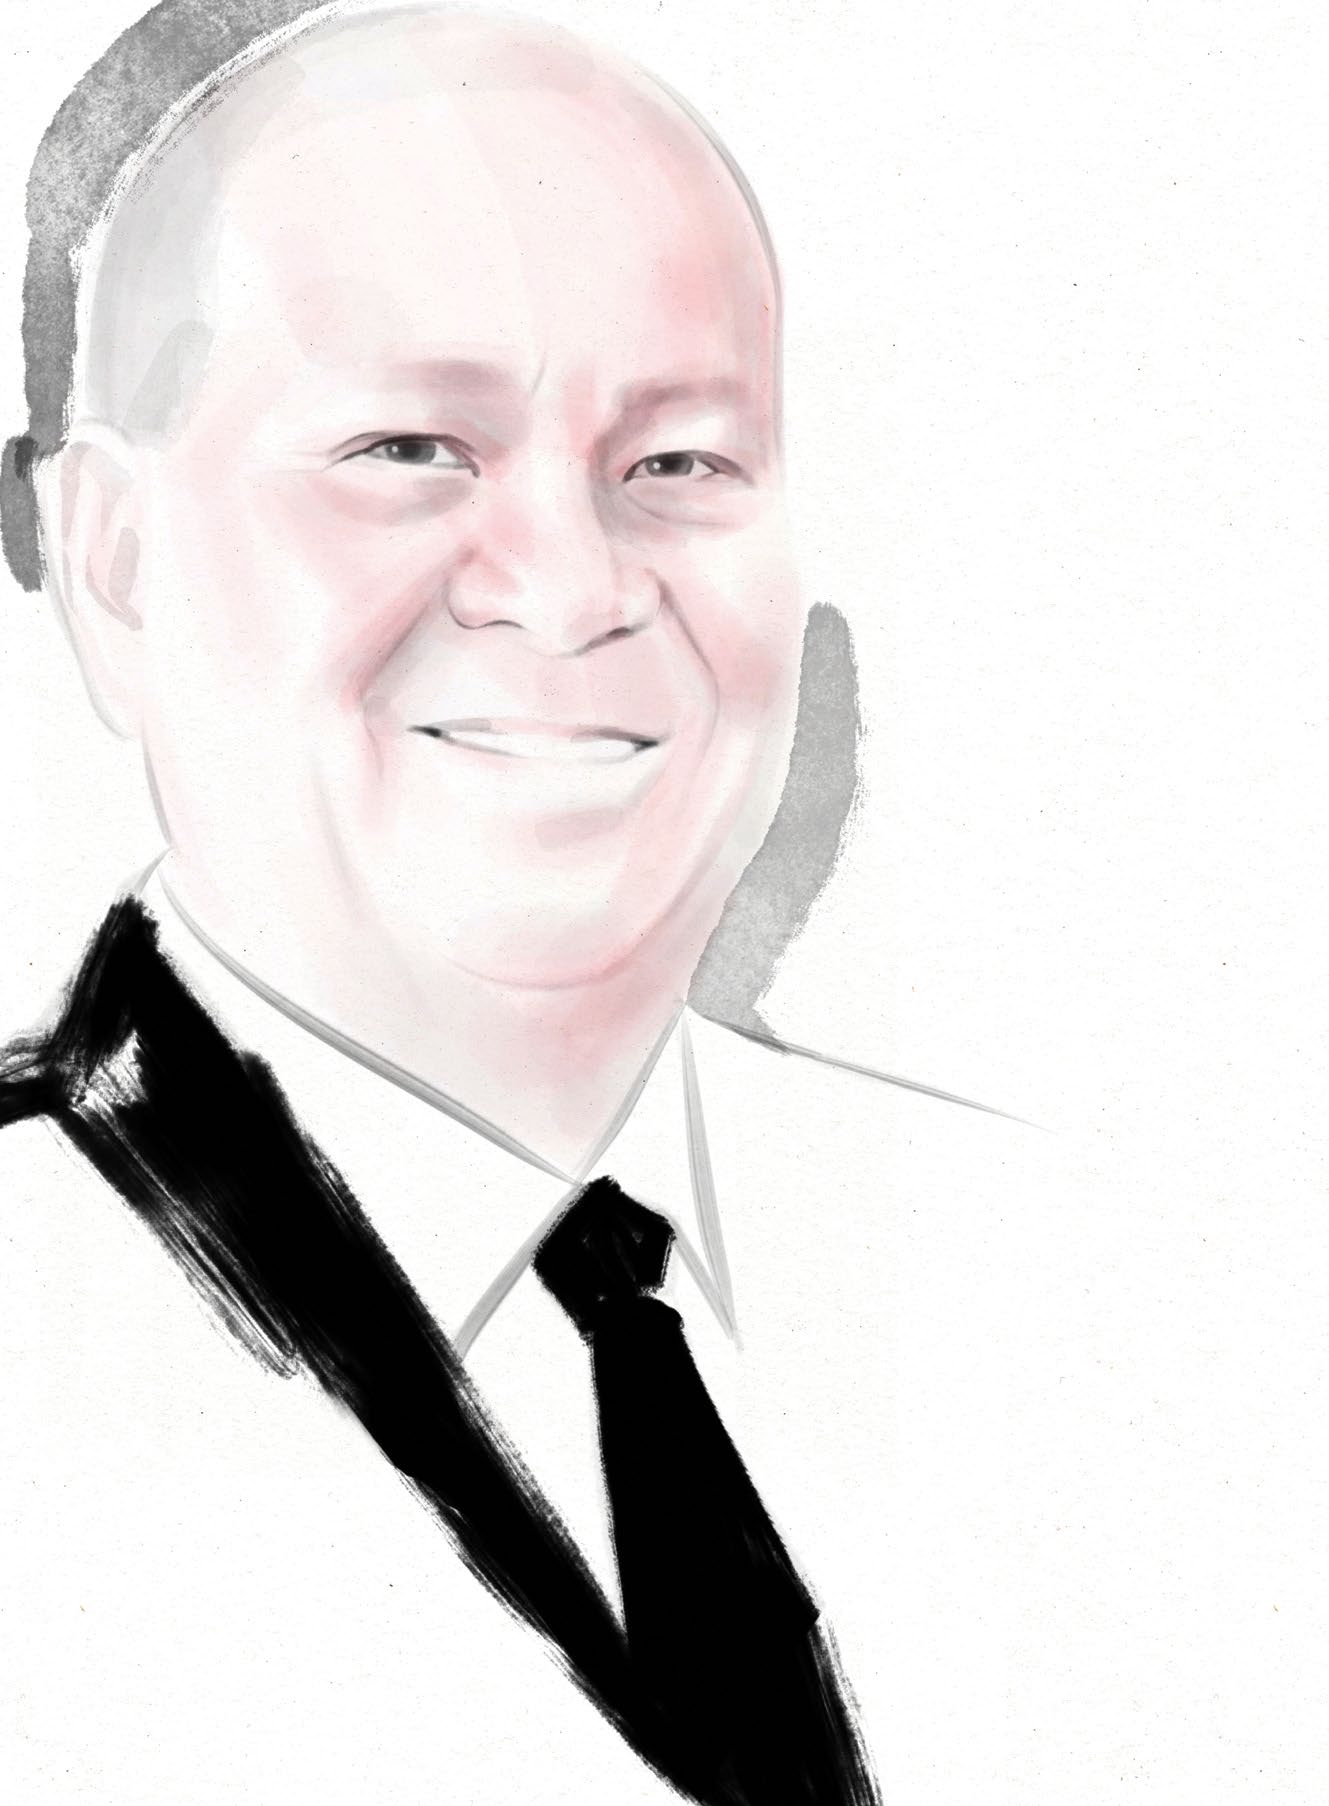 Visionary Leader Ramon Ang Talks About The Legacy He Would Like To Leave Behind